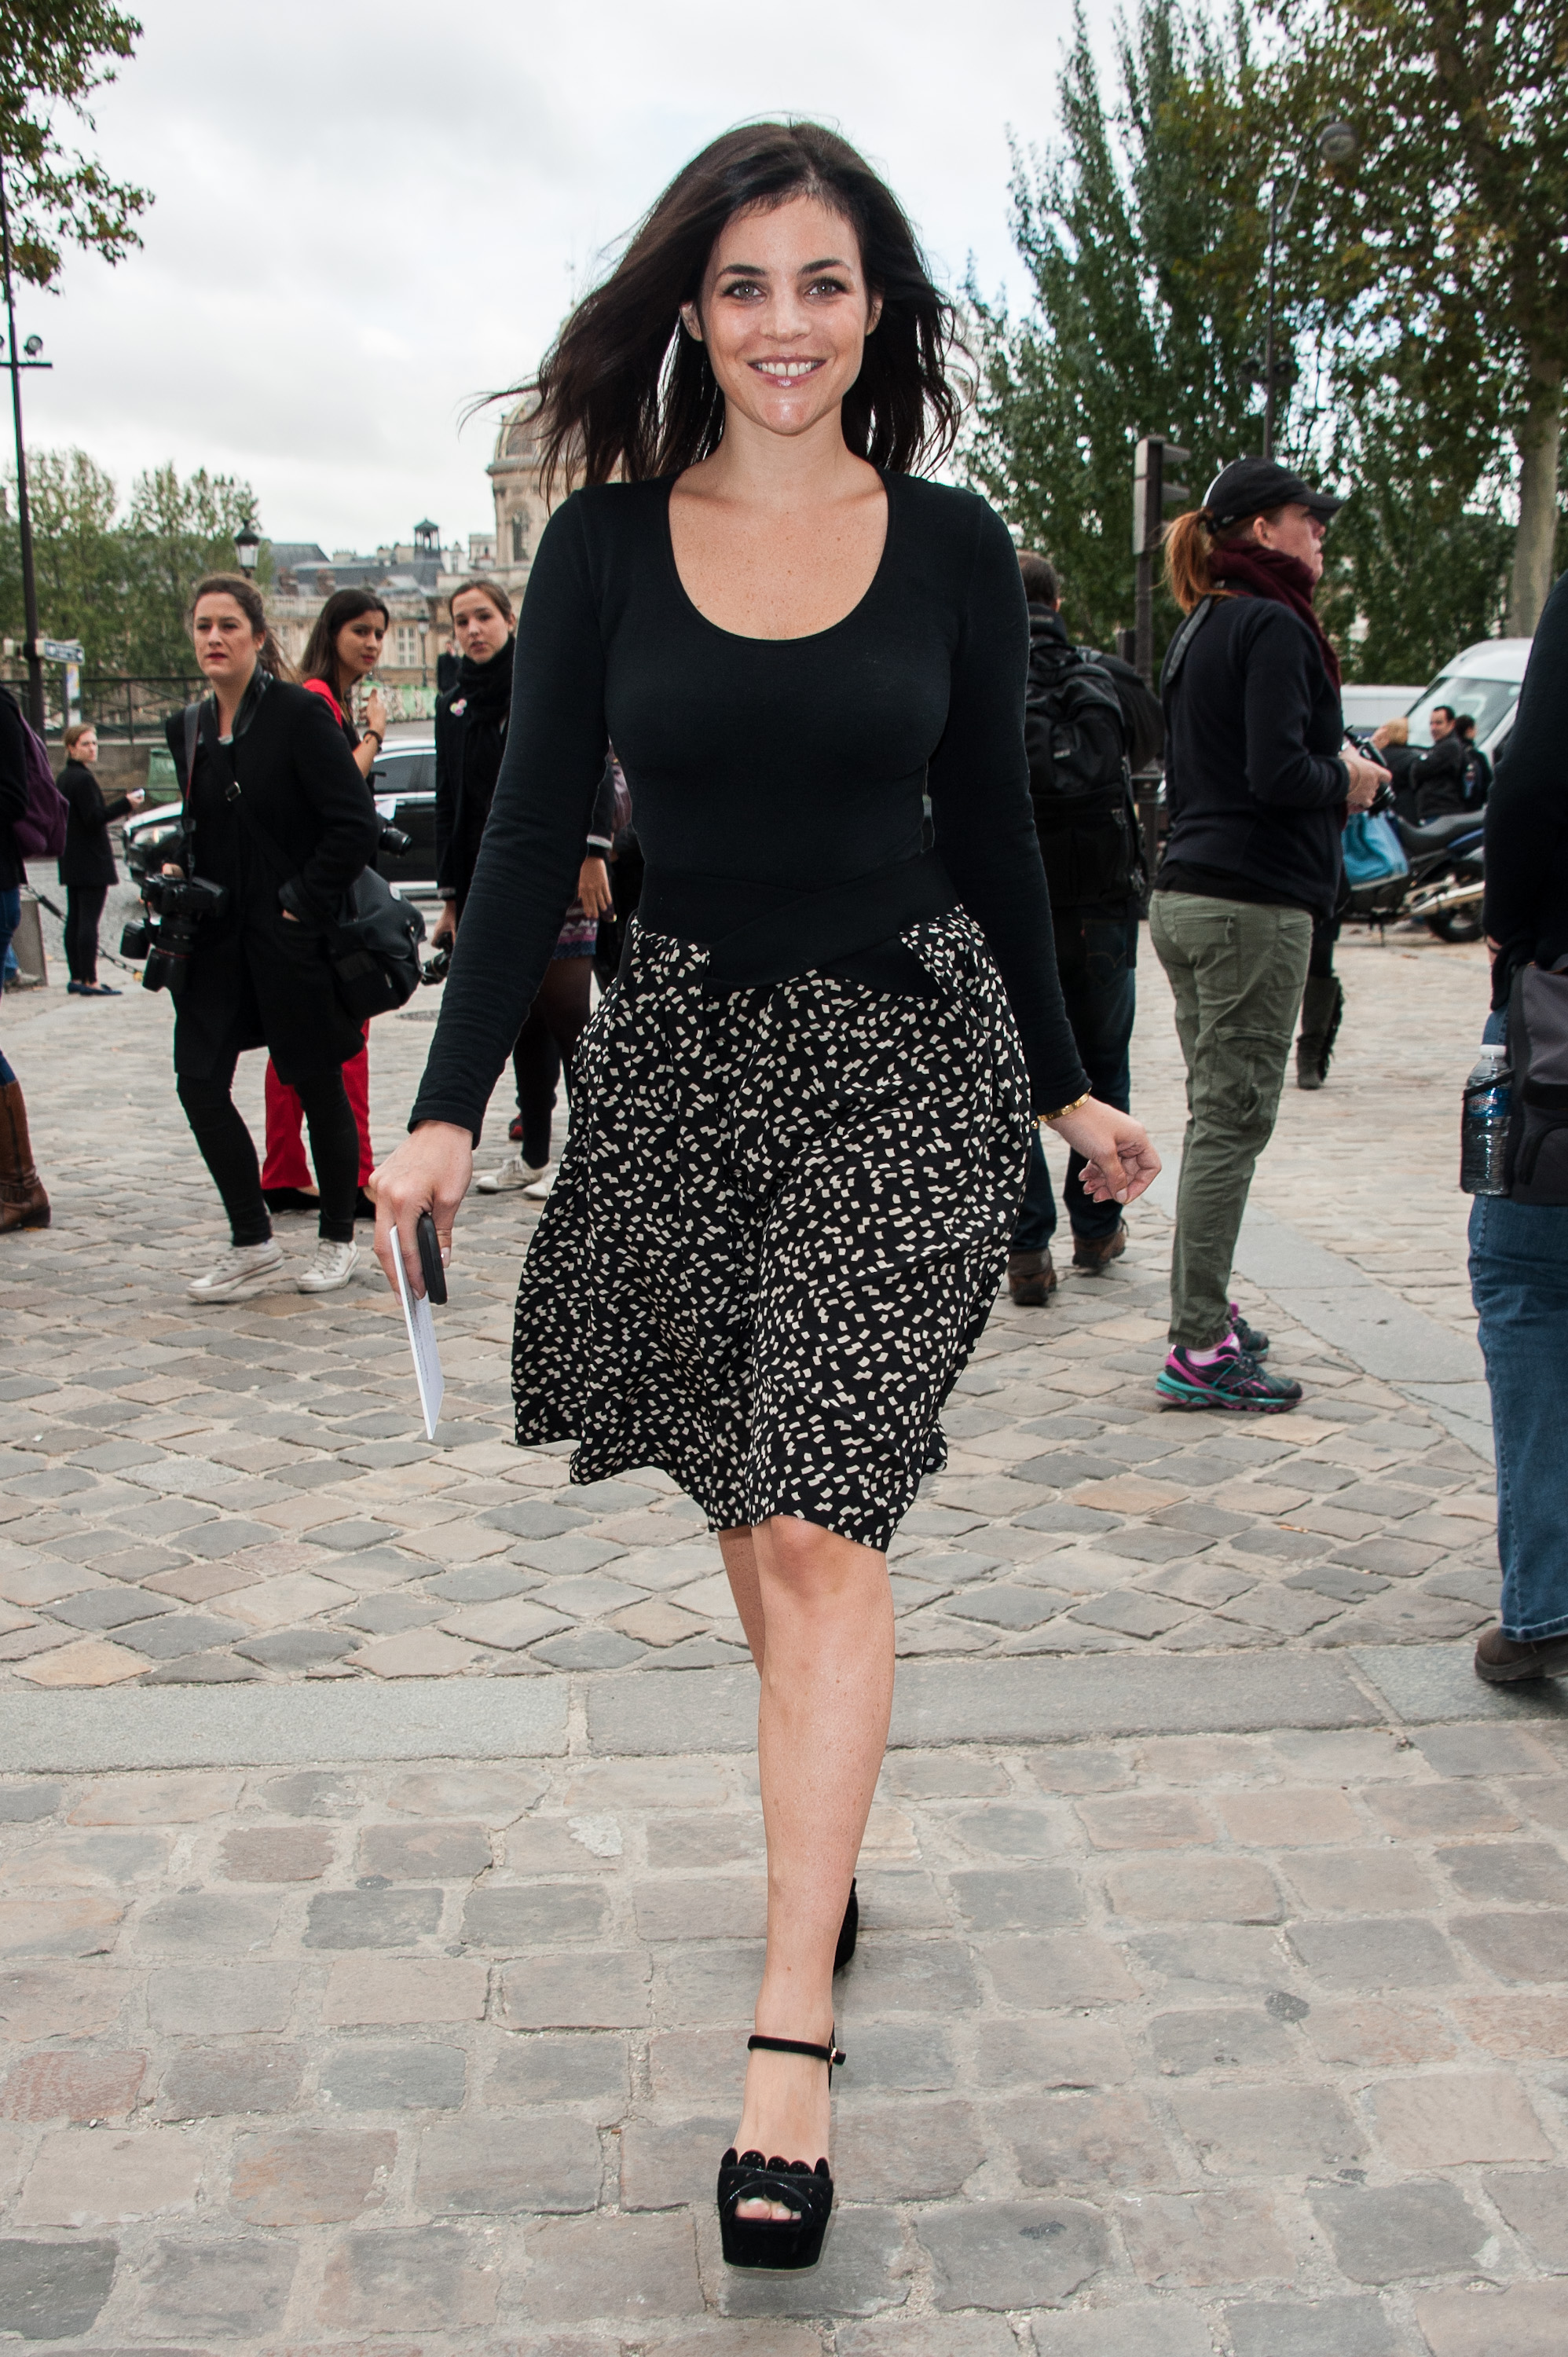 Julia Restoin Roitfeld mixed up her chic black wares with a flirty printed skirt and peep-toe sandals en route to Louis Vuitton.